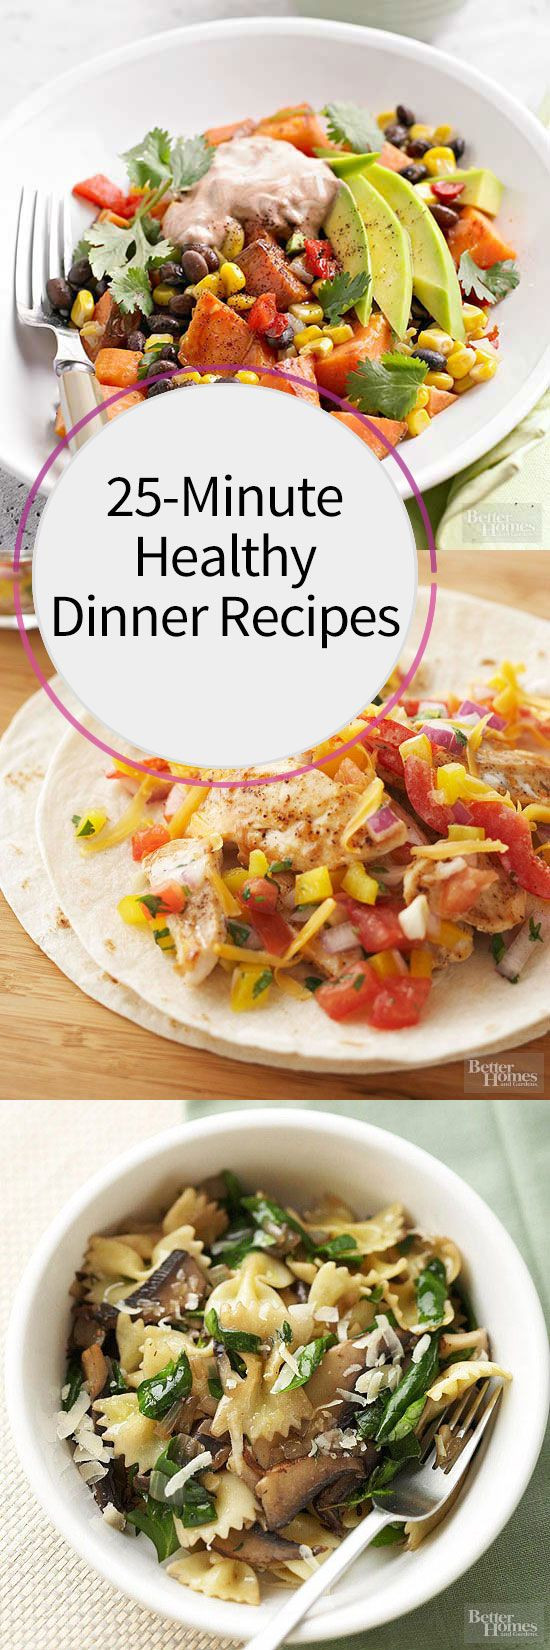 Healthy Dinner Tonight  25 Minute Healthy Dinner Recipes